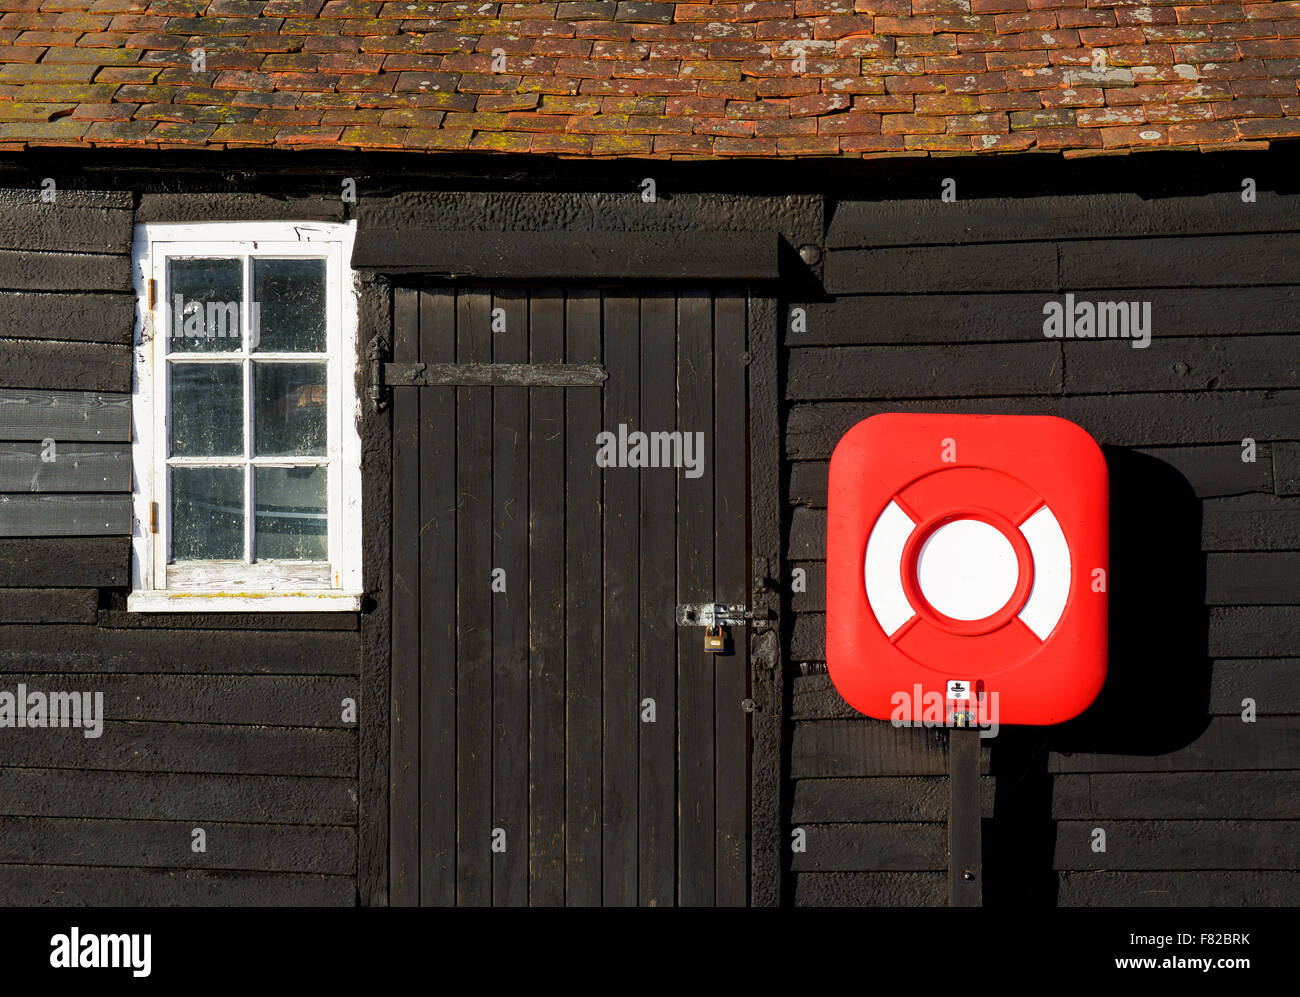 Lifebelt mounted on wooden building in the village of Bosham, Sussex, England UK - Stock Image